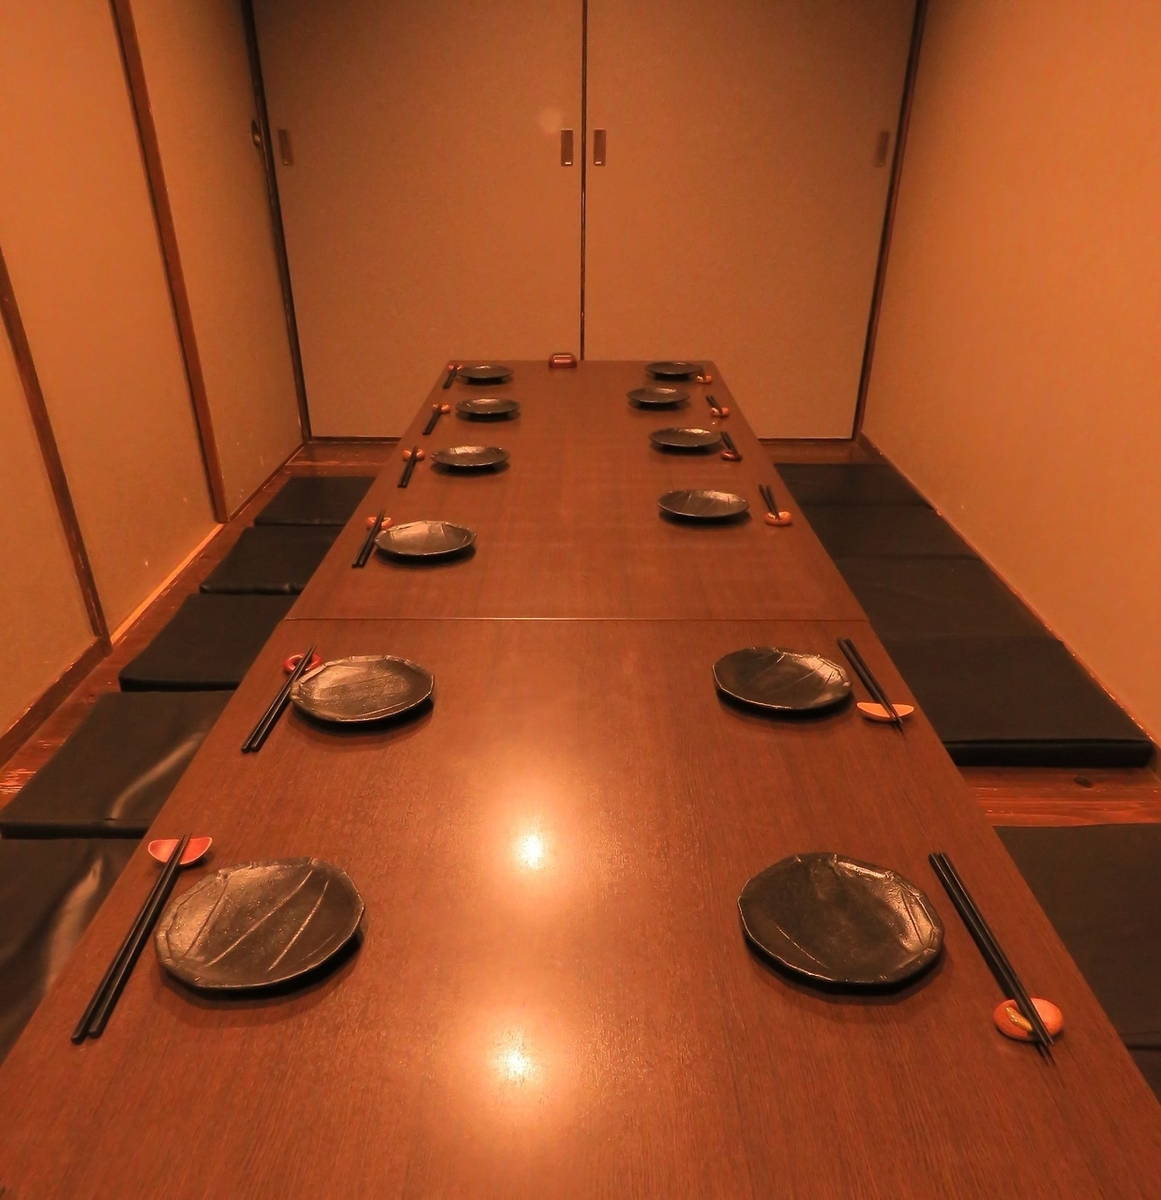 10 people for a maximum of 14 guests digging kotatsu private room